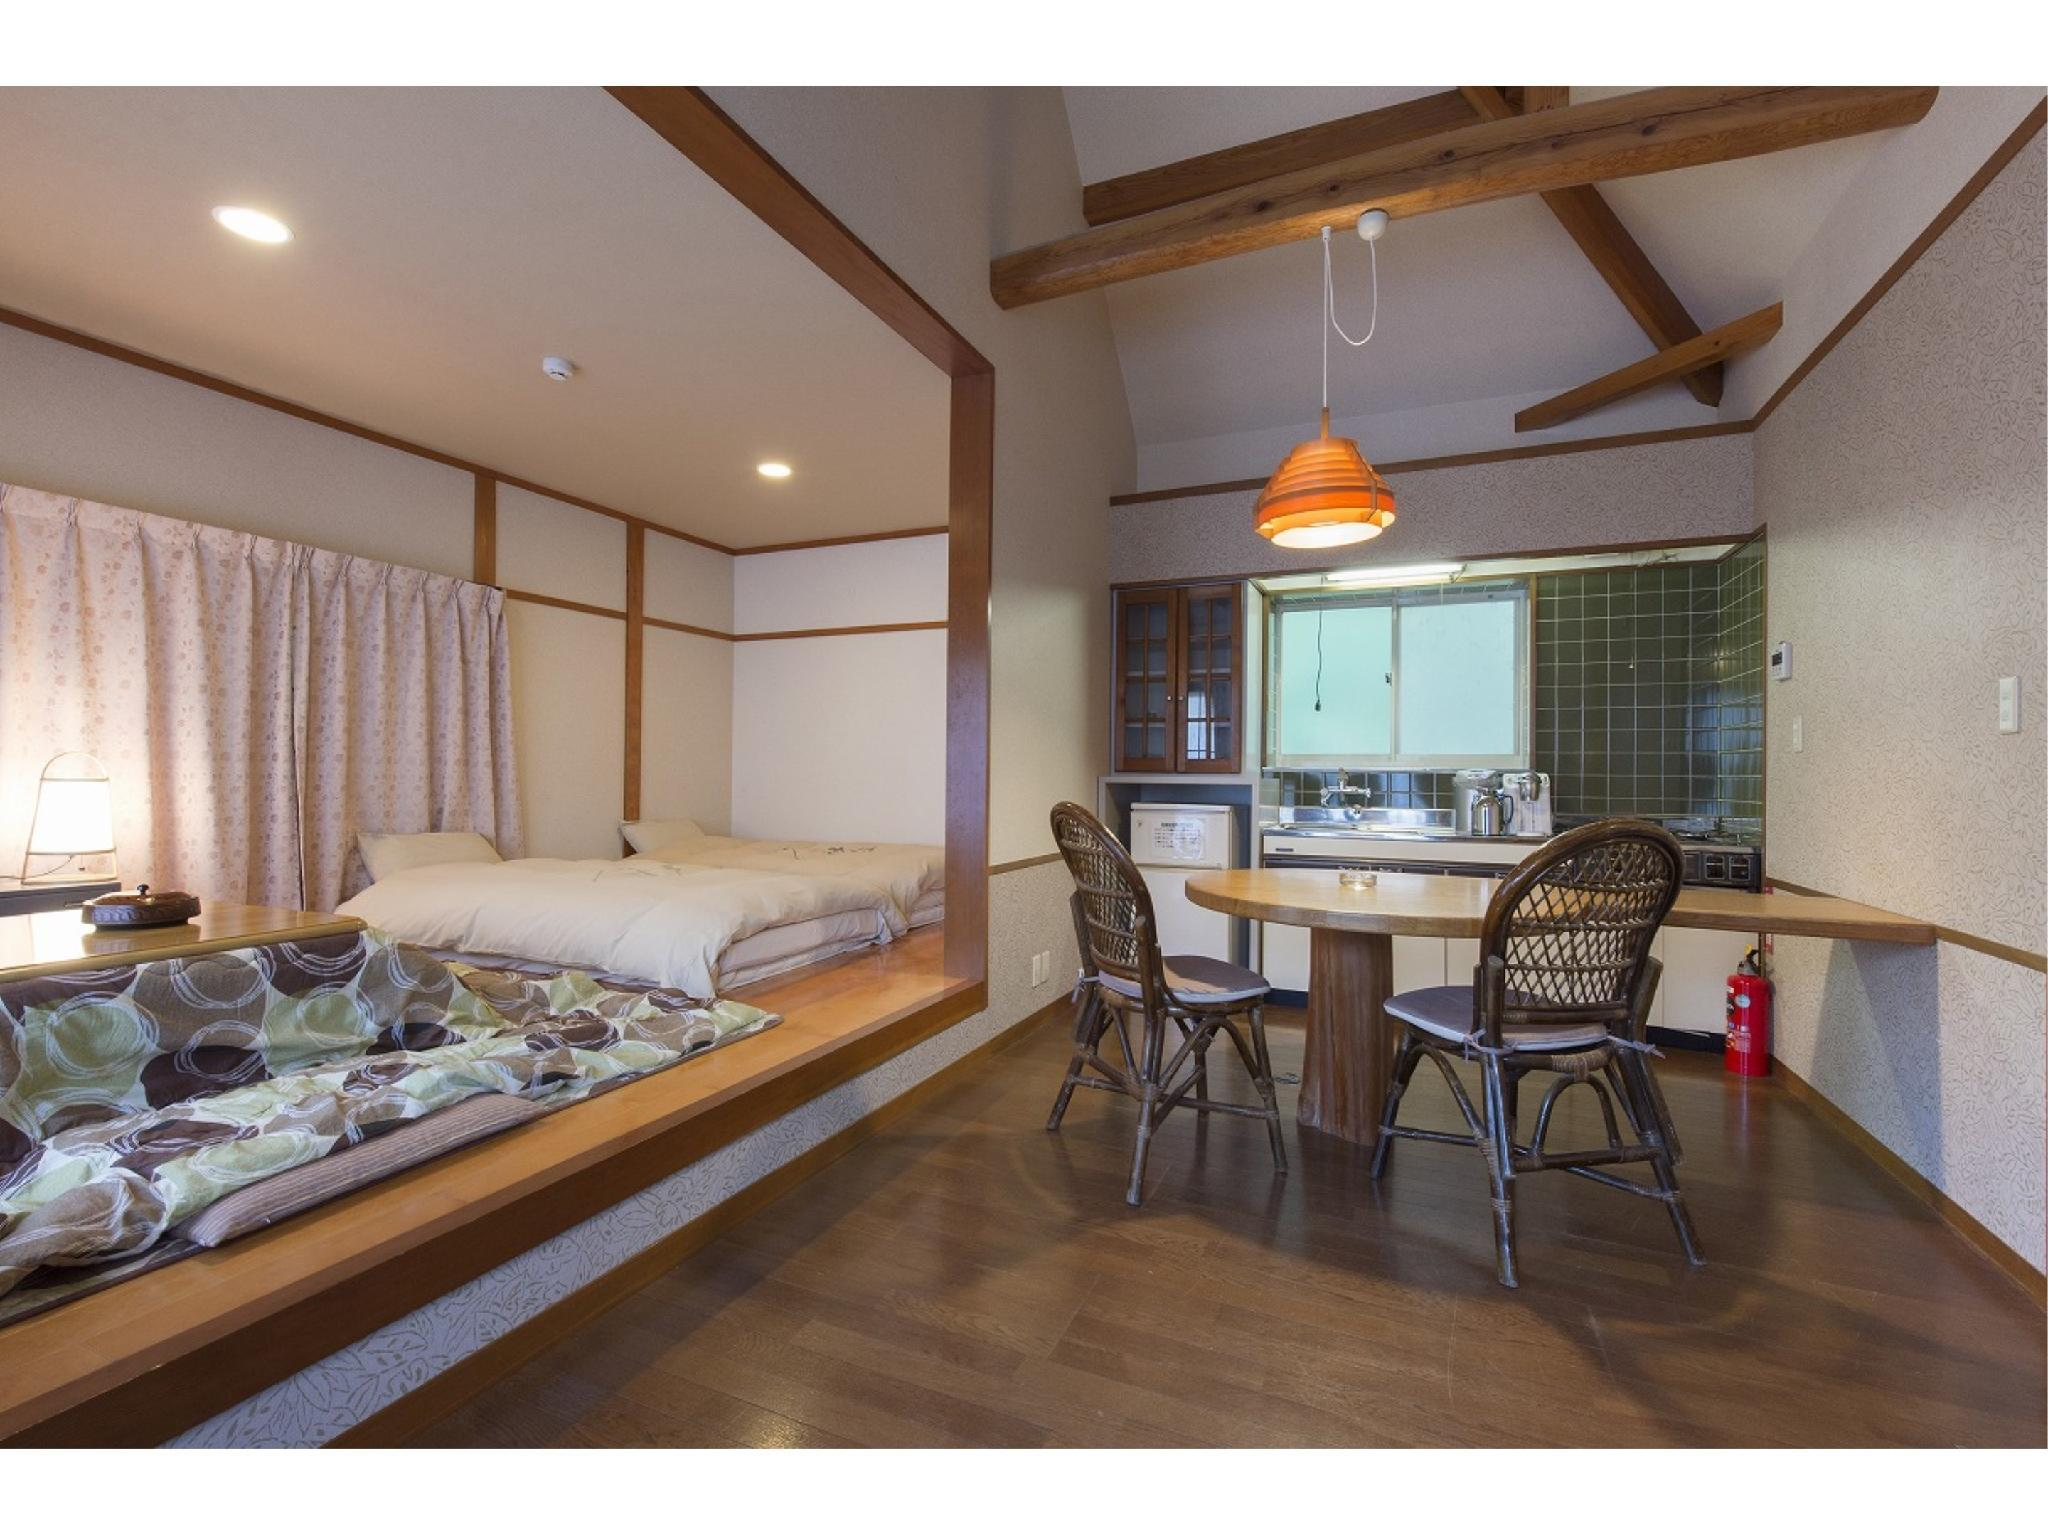 Superior Japanese-style Bedroom with Open-air Hot Spring Bath (Forest Cottage)